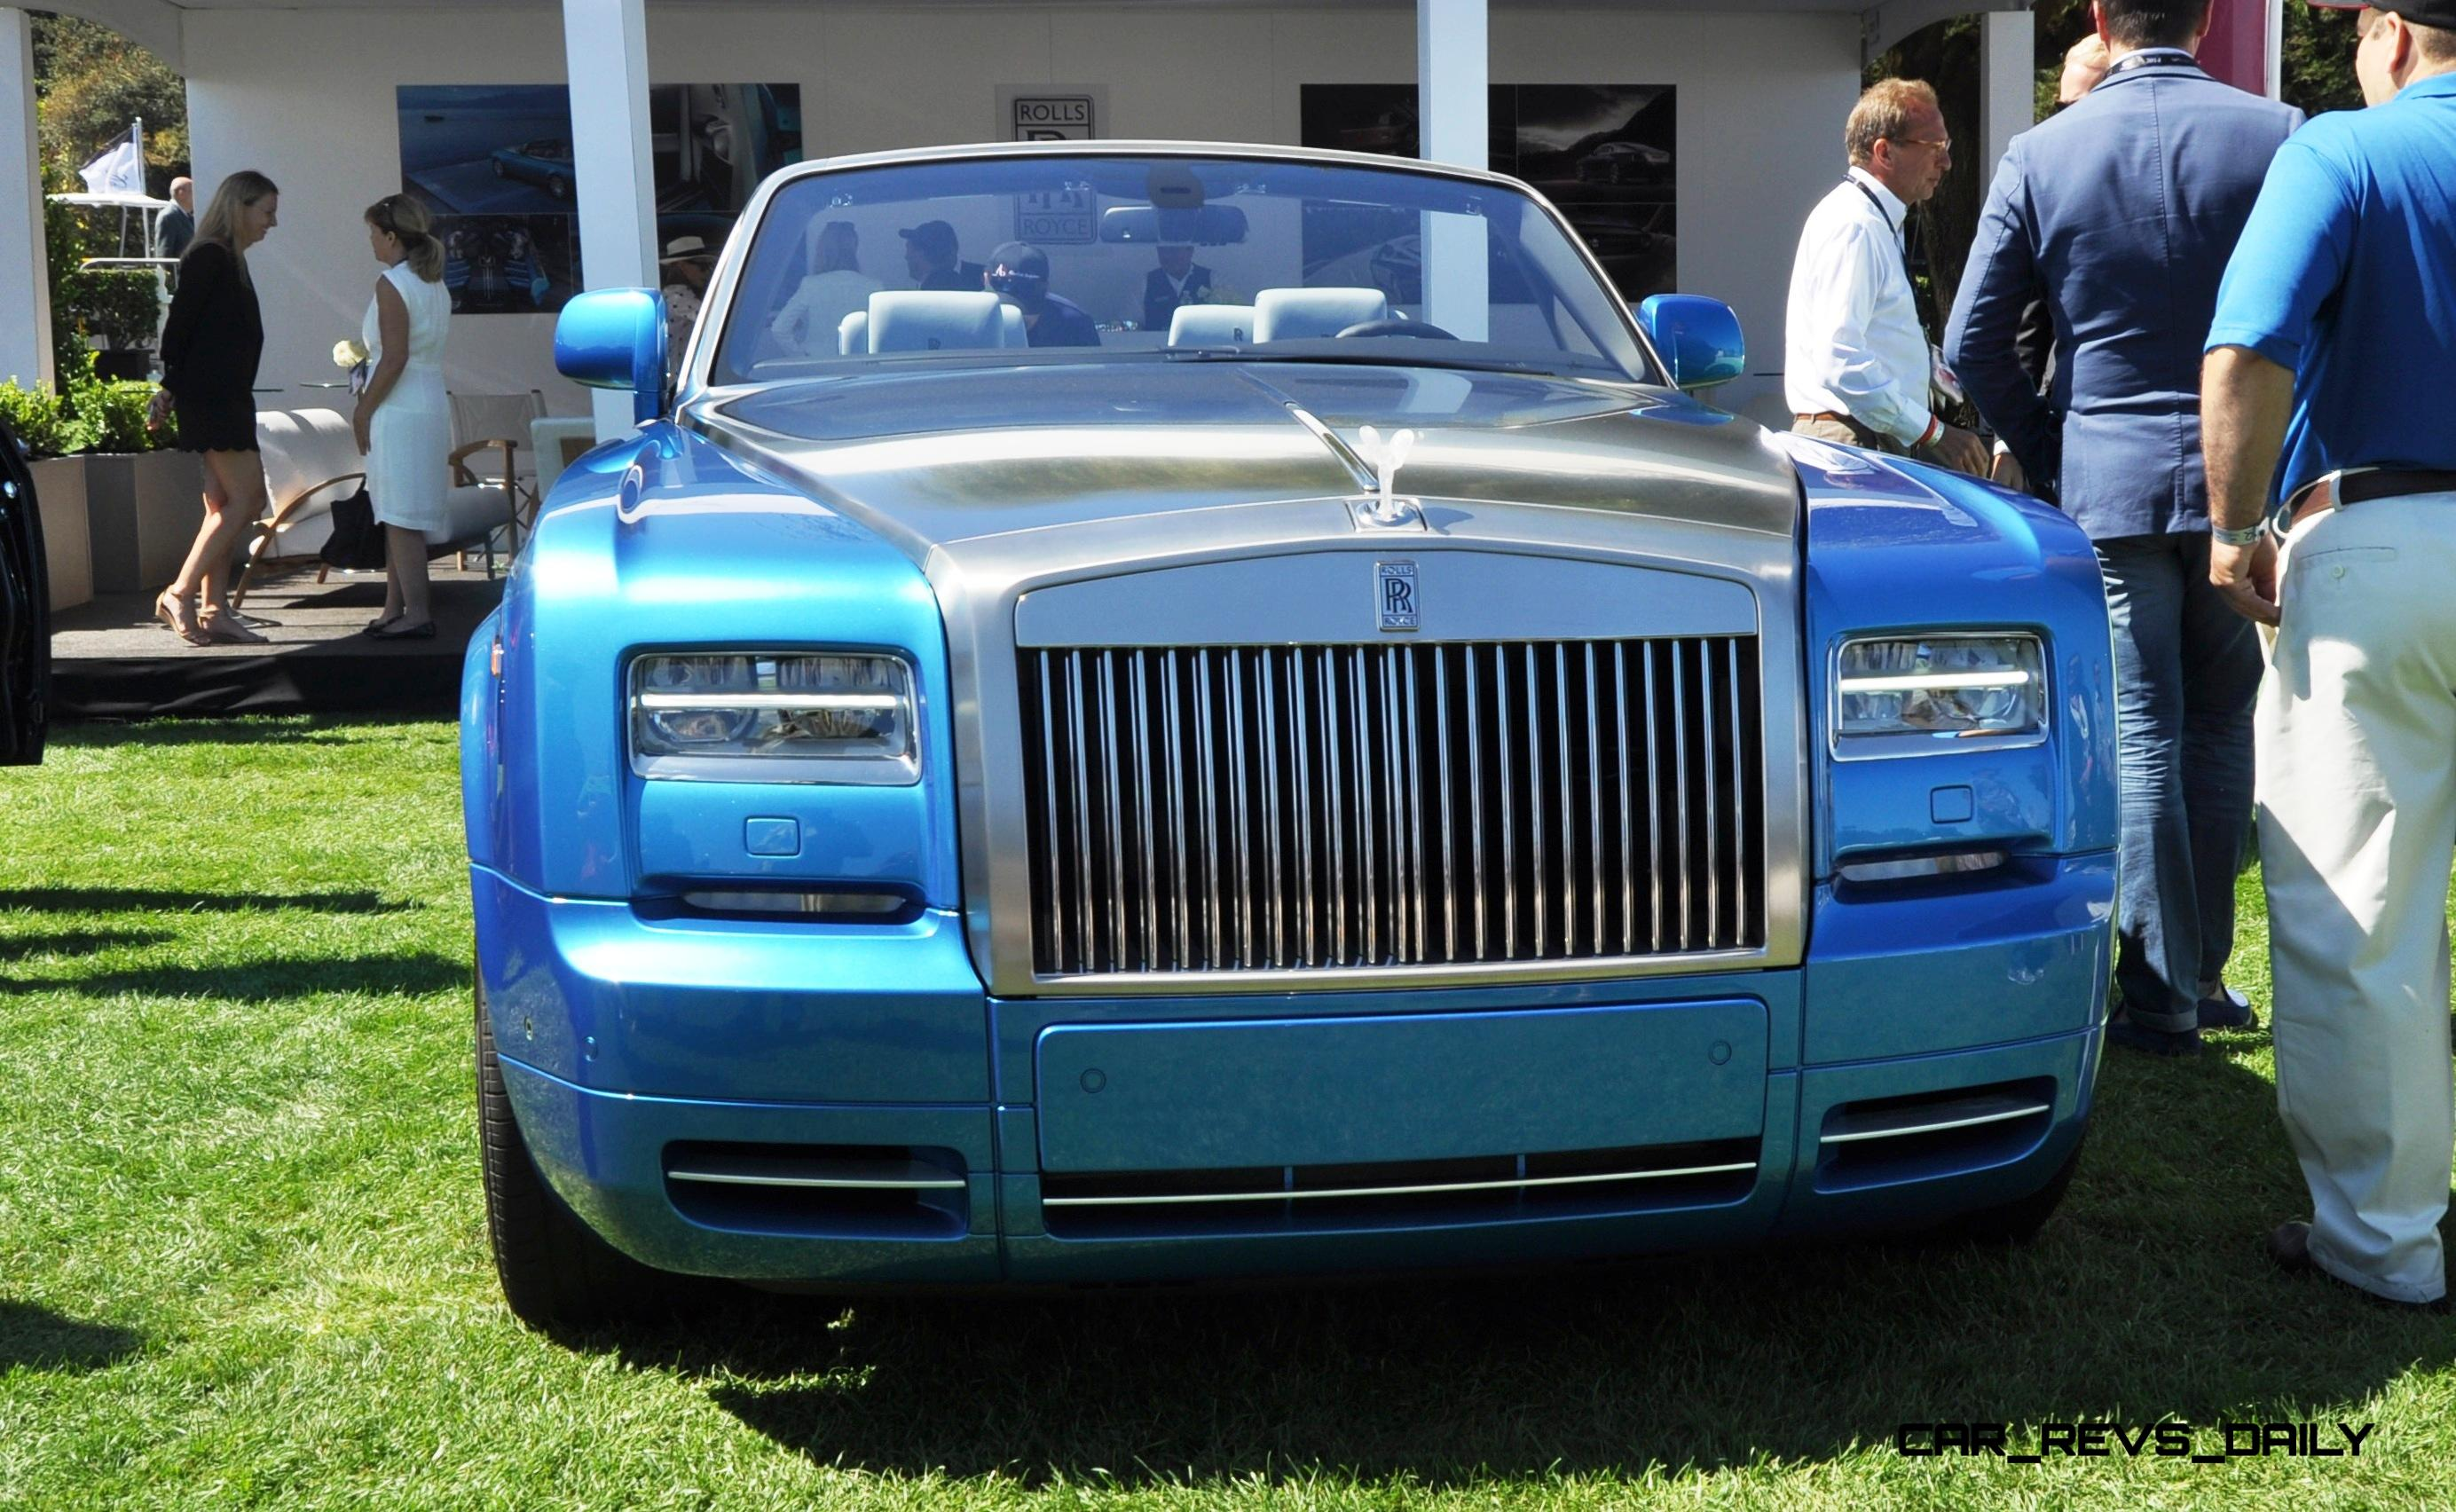 USA Debut of Rolls Royce Phantom Drophead Coupe Waterspeed Collection